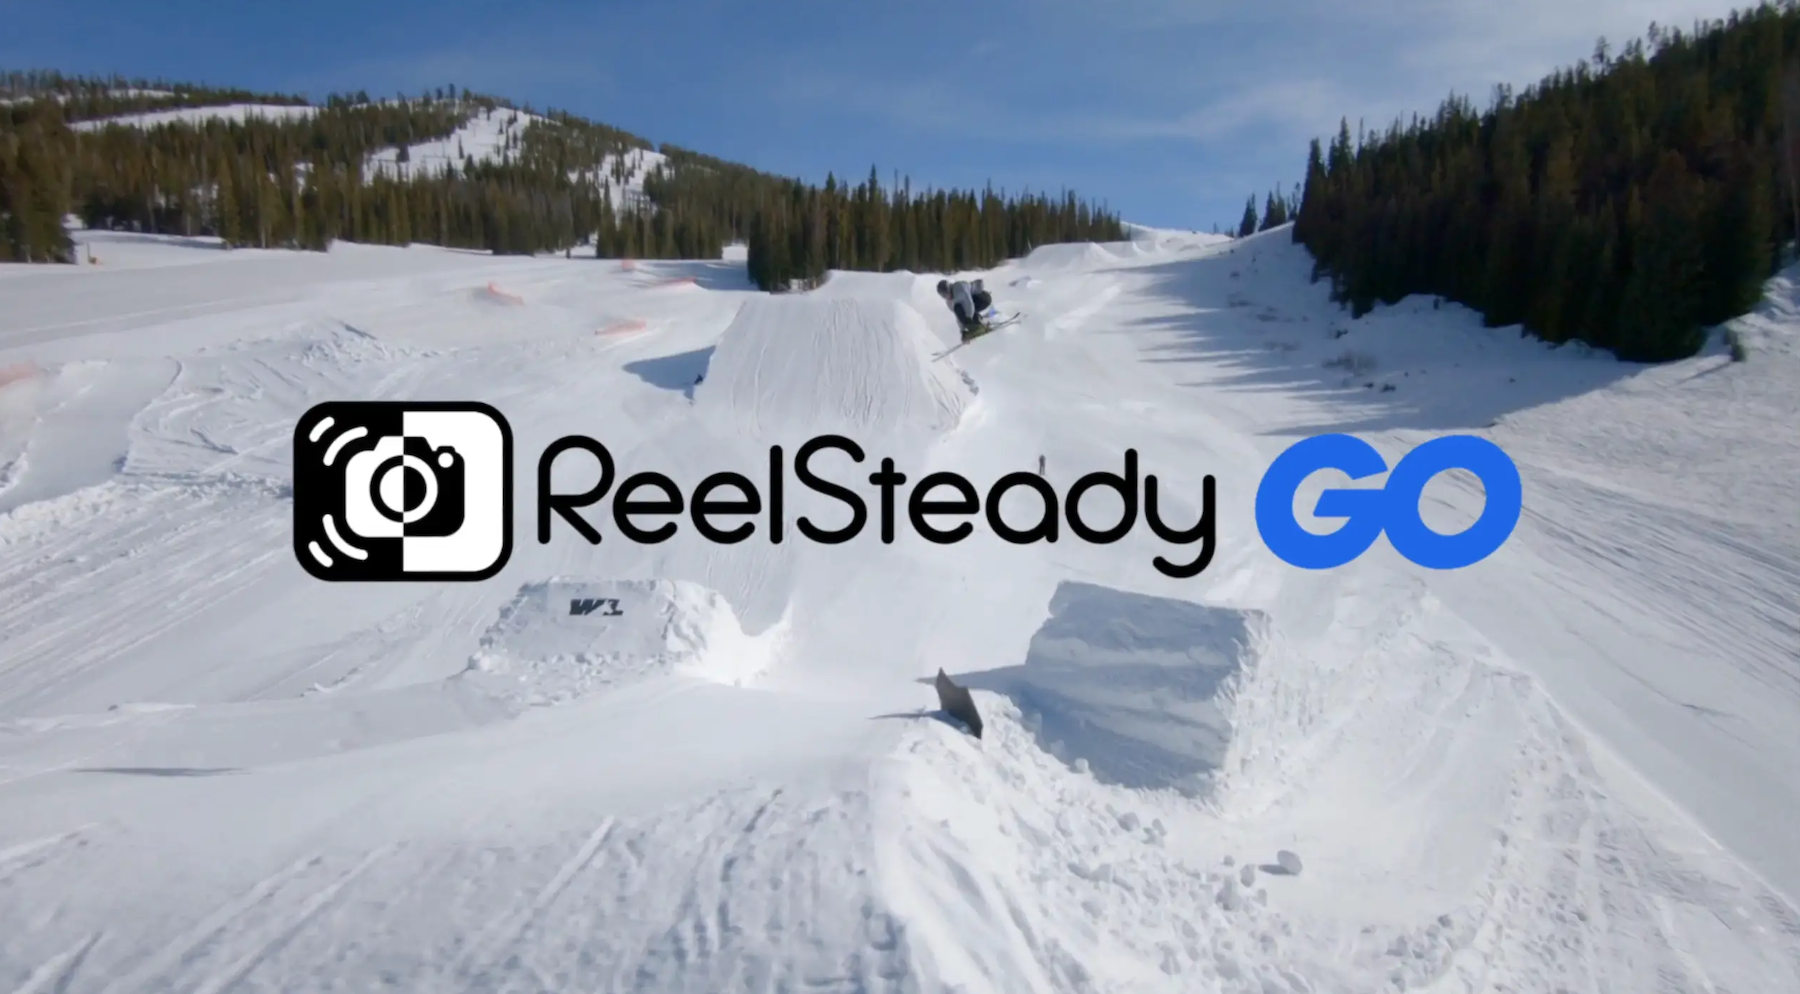 Tech Review: ReelSteady GO Is A Smooth Operator